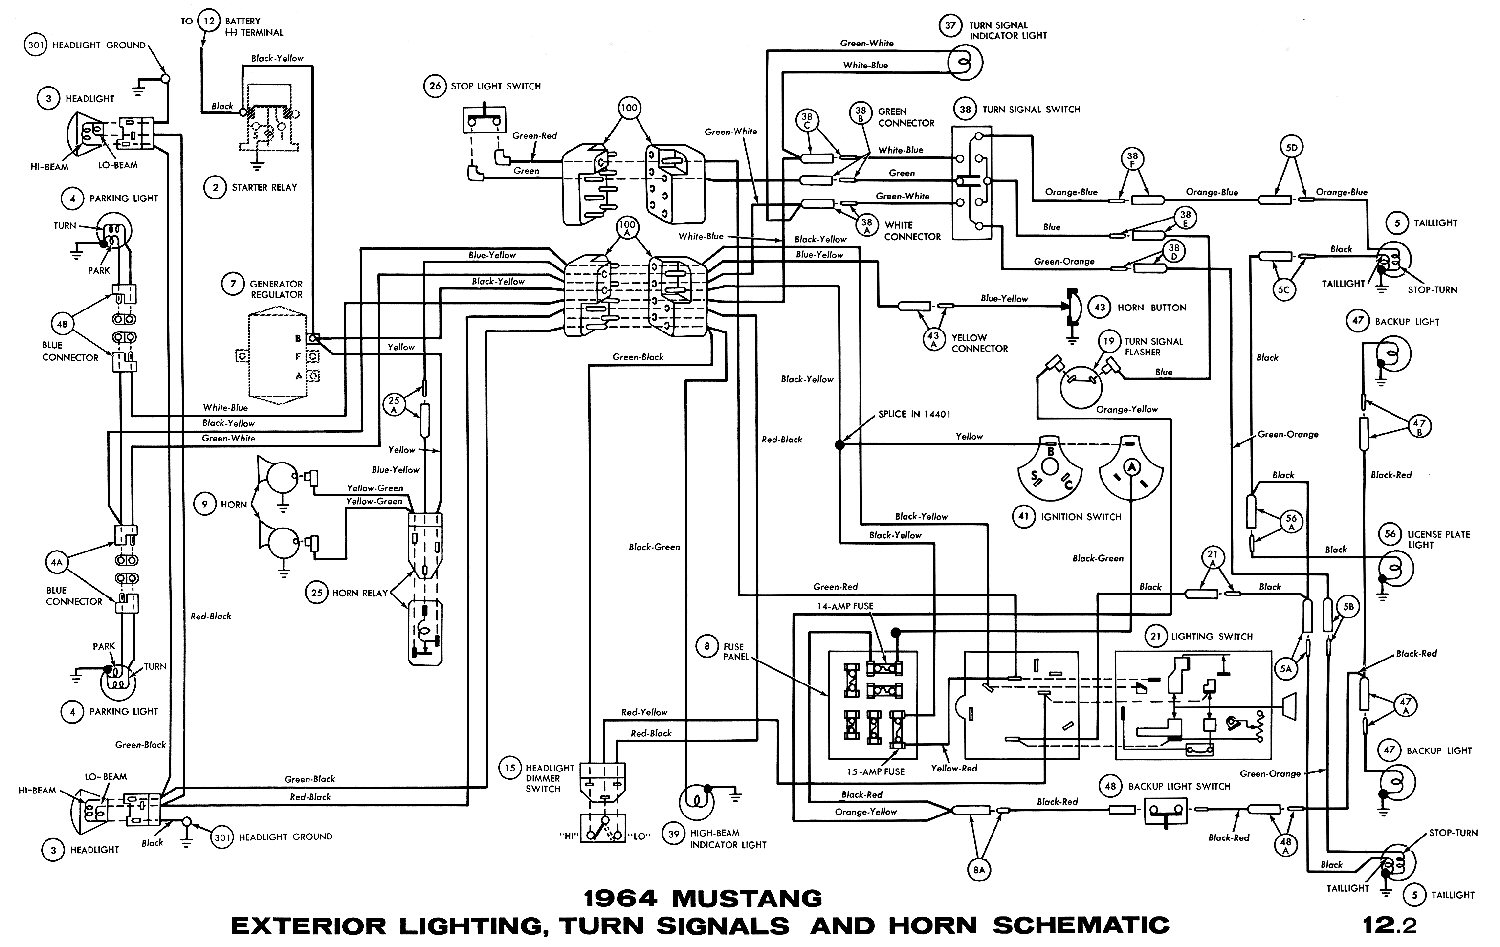 68 mustang engine wiring diagram 1964 mustang wiring diagrams average joe restoration #3